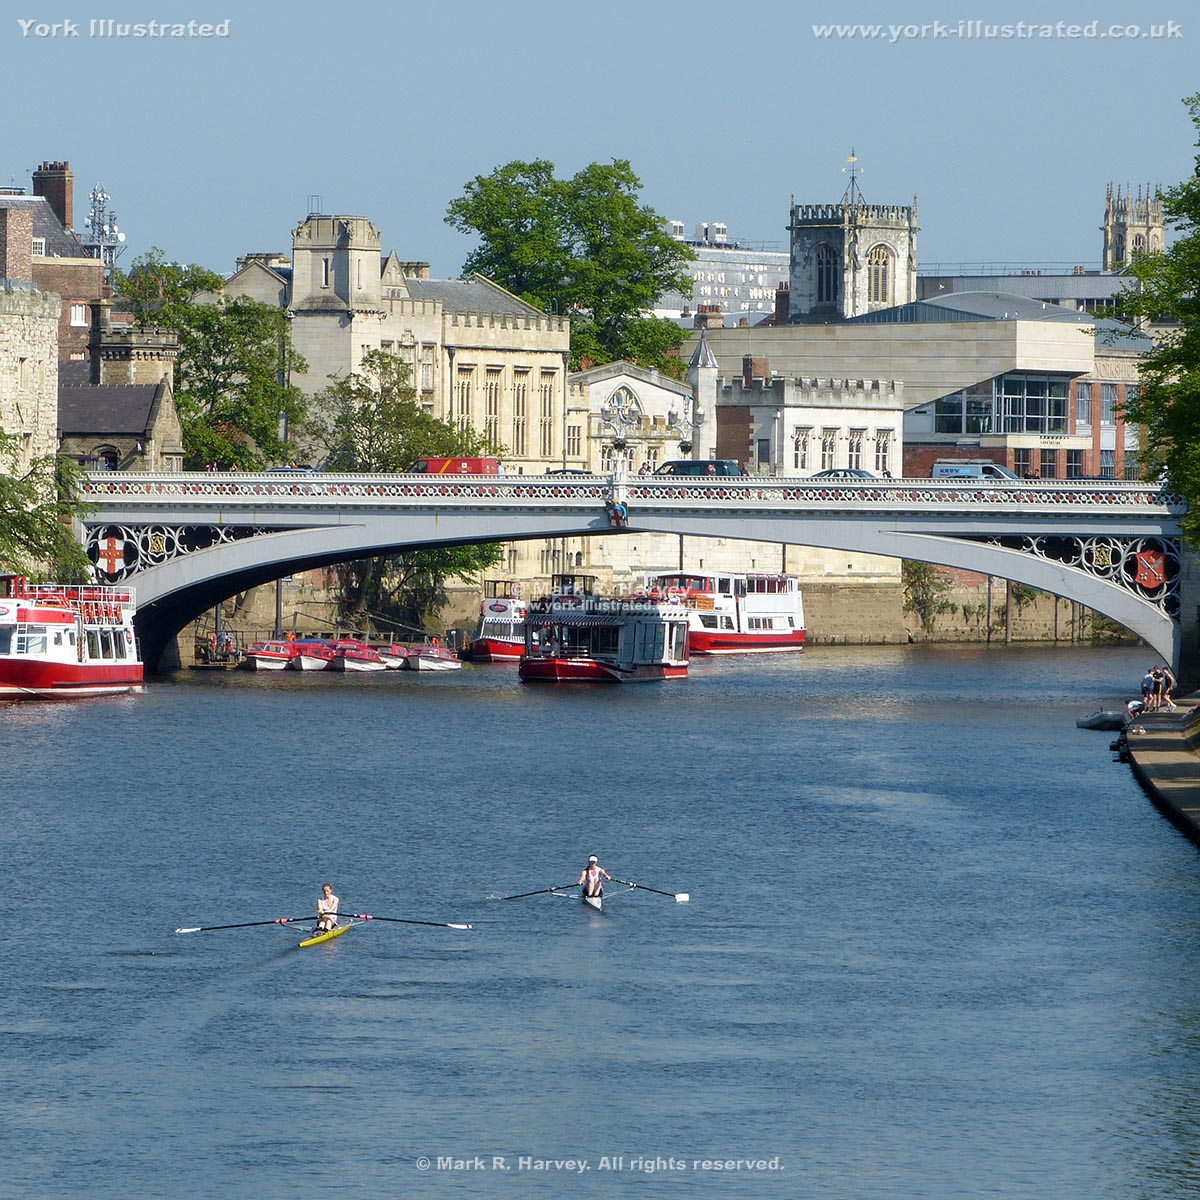 Photograph: Two single sculls and tour boats on River Ouse (York) plus Lendal Bridge.